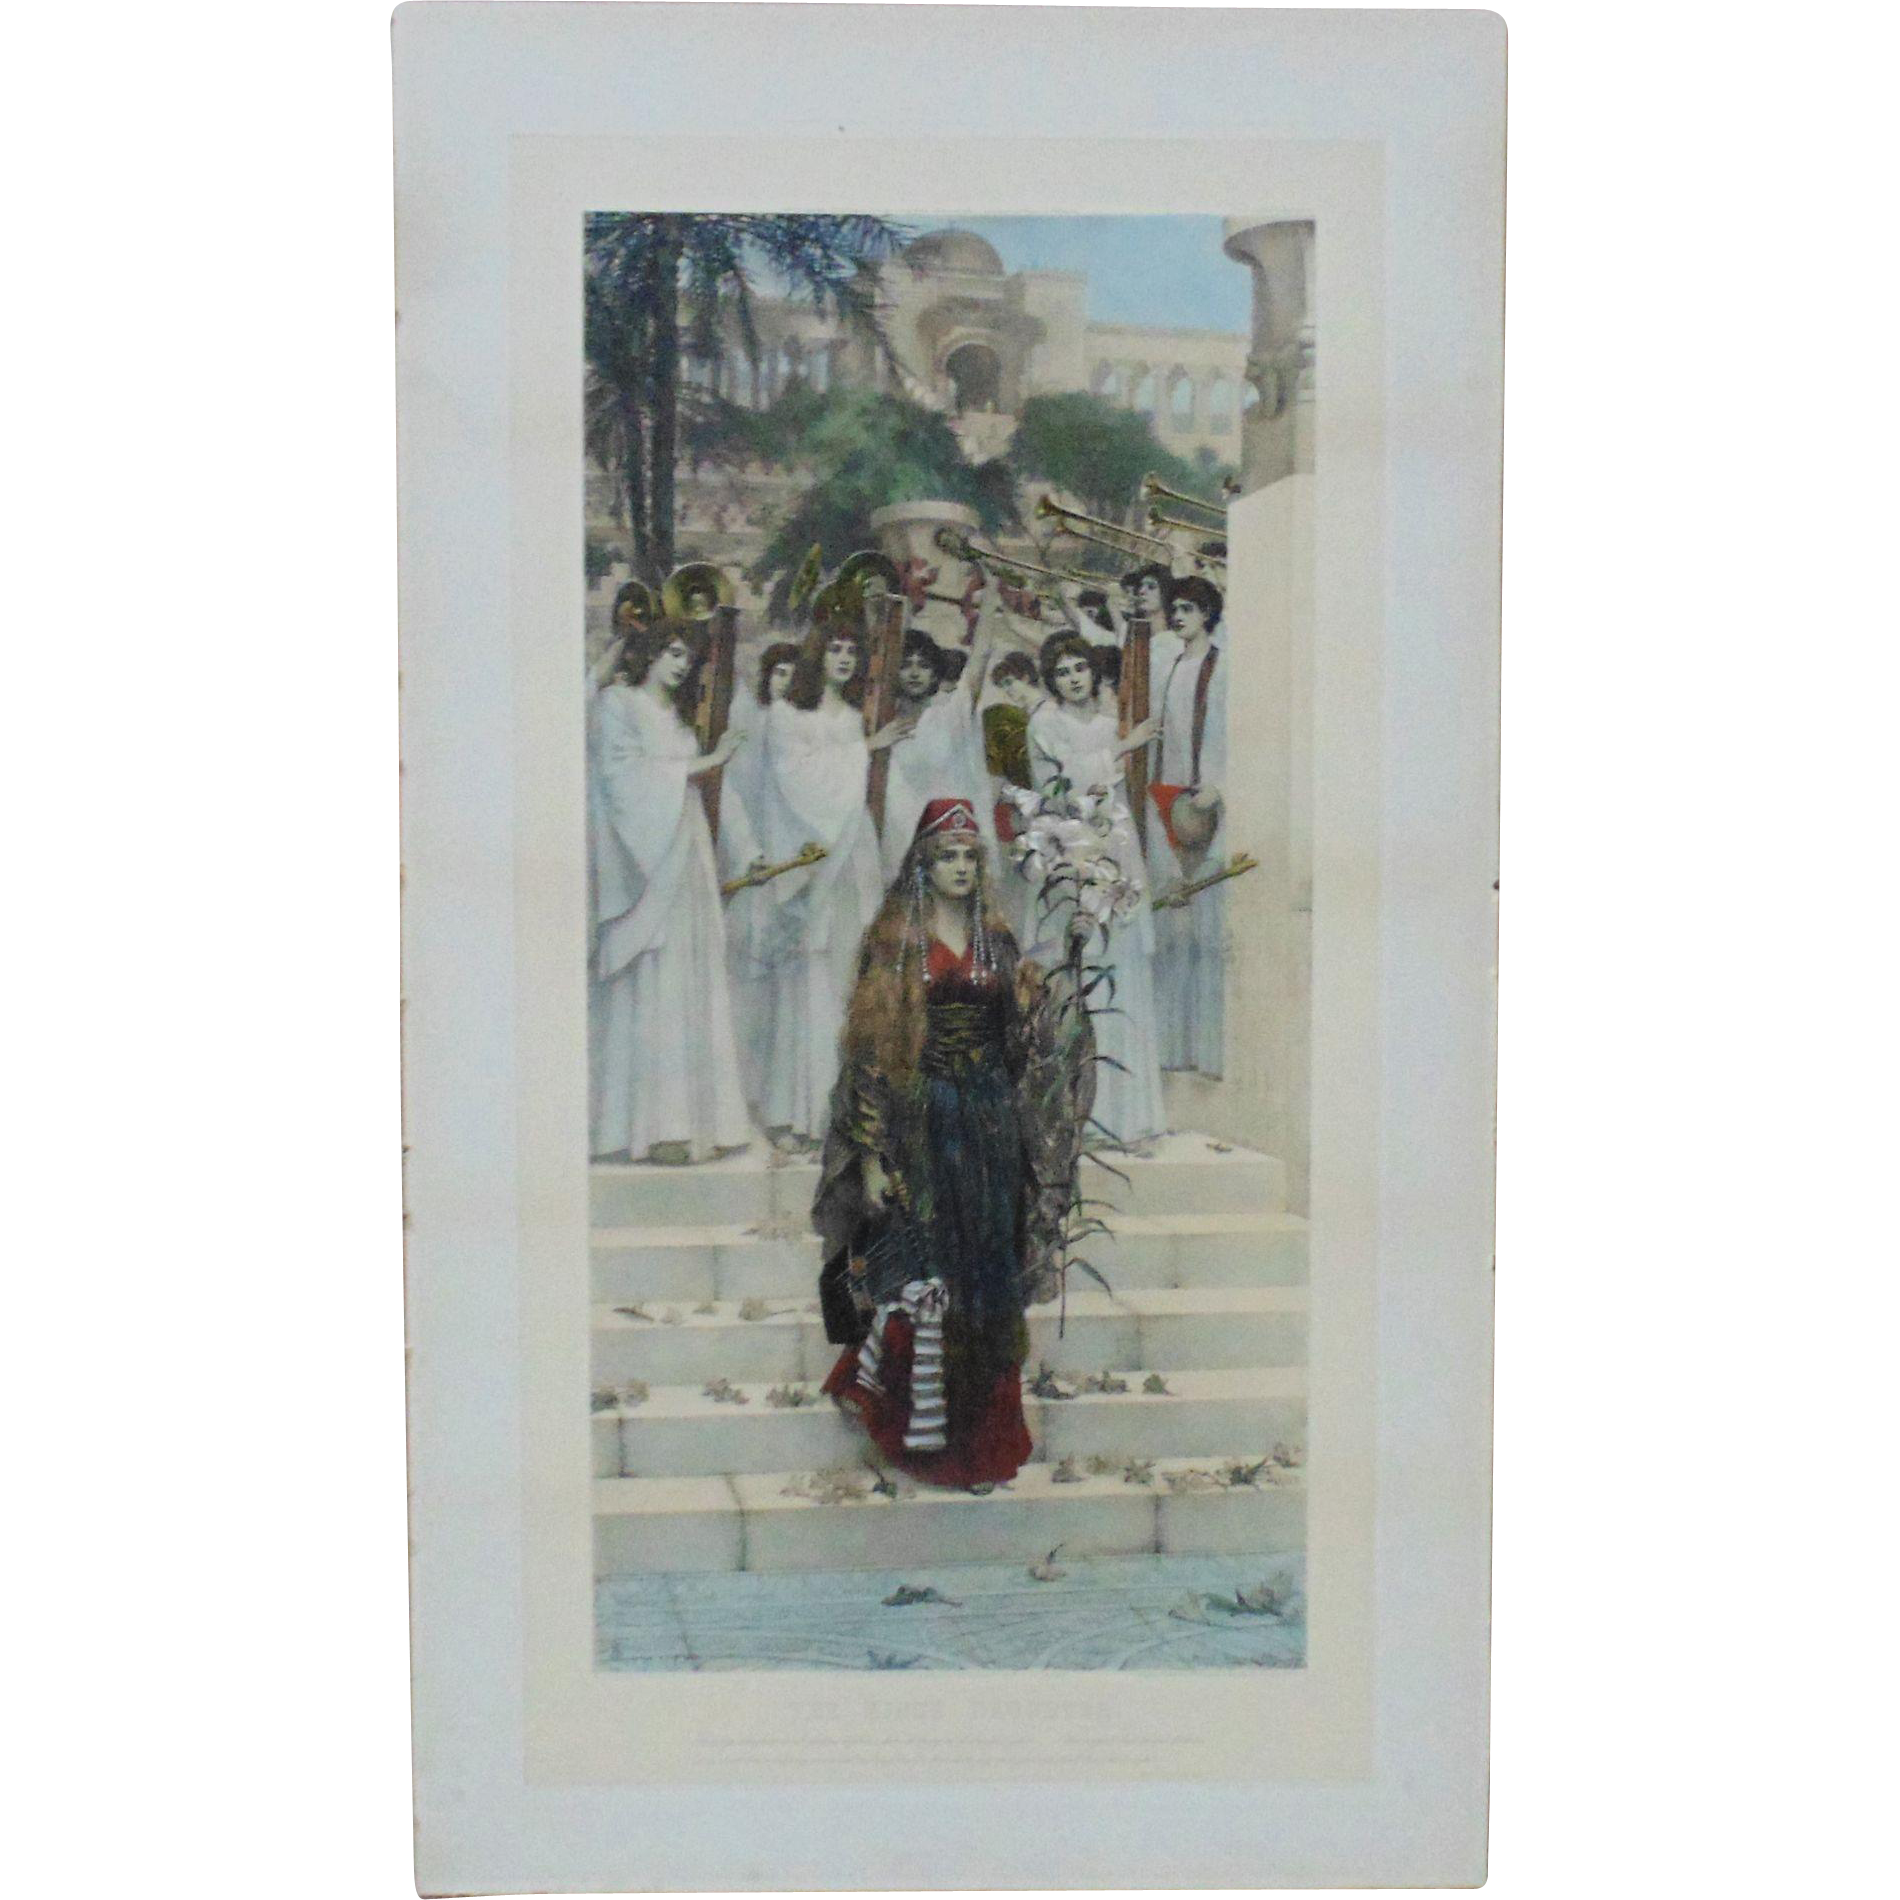 RARE Herbert Schmalz LARGE Hand Colored Photogravure Print The Kings Daughter C1891 Psalm XLV Religious